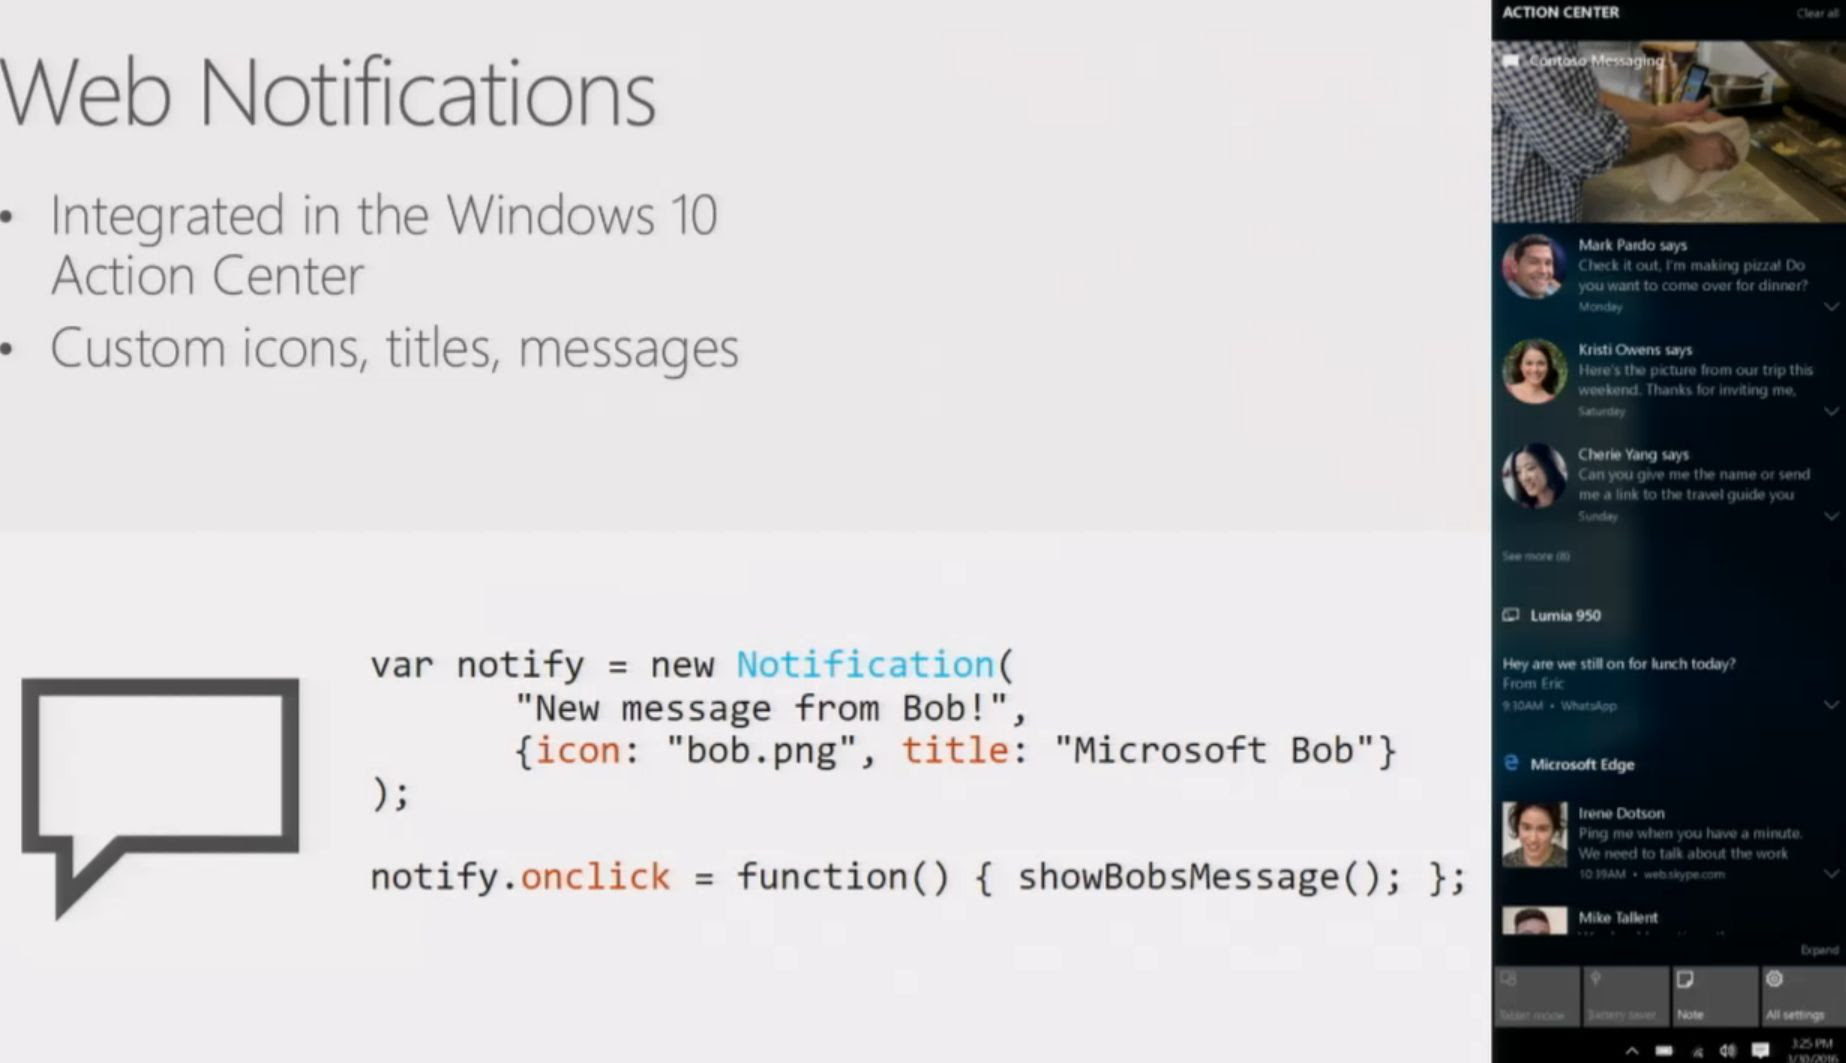 Microsoft Edge web notifications